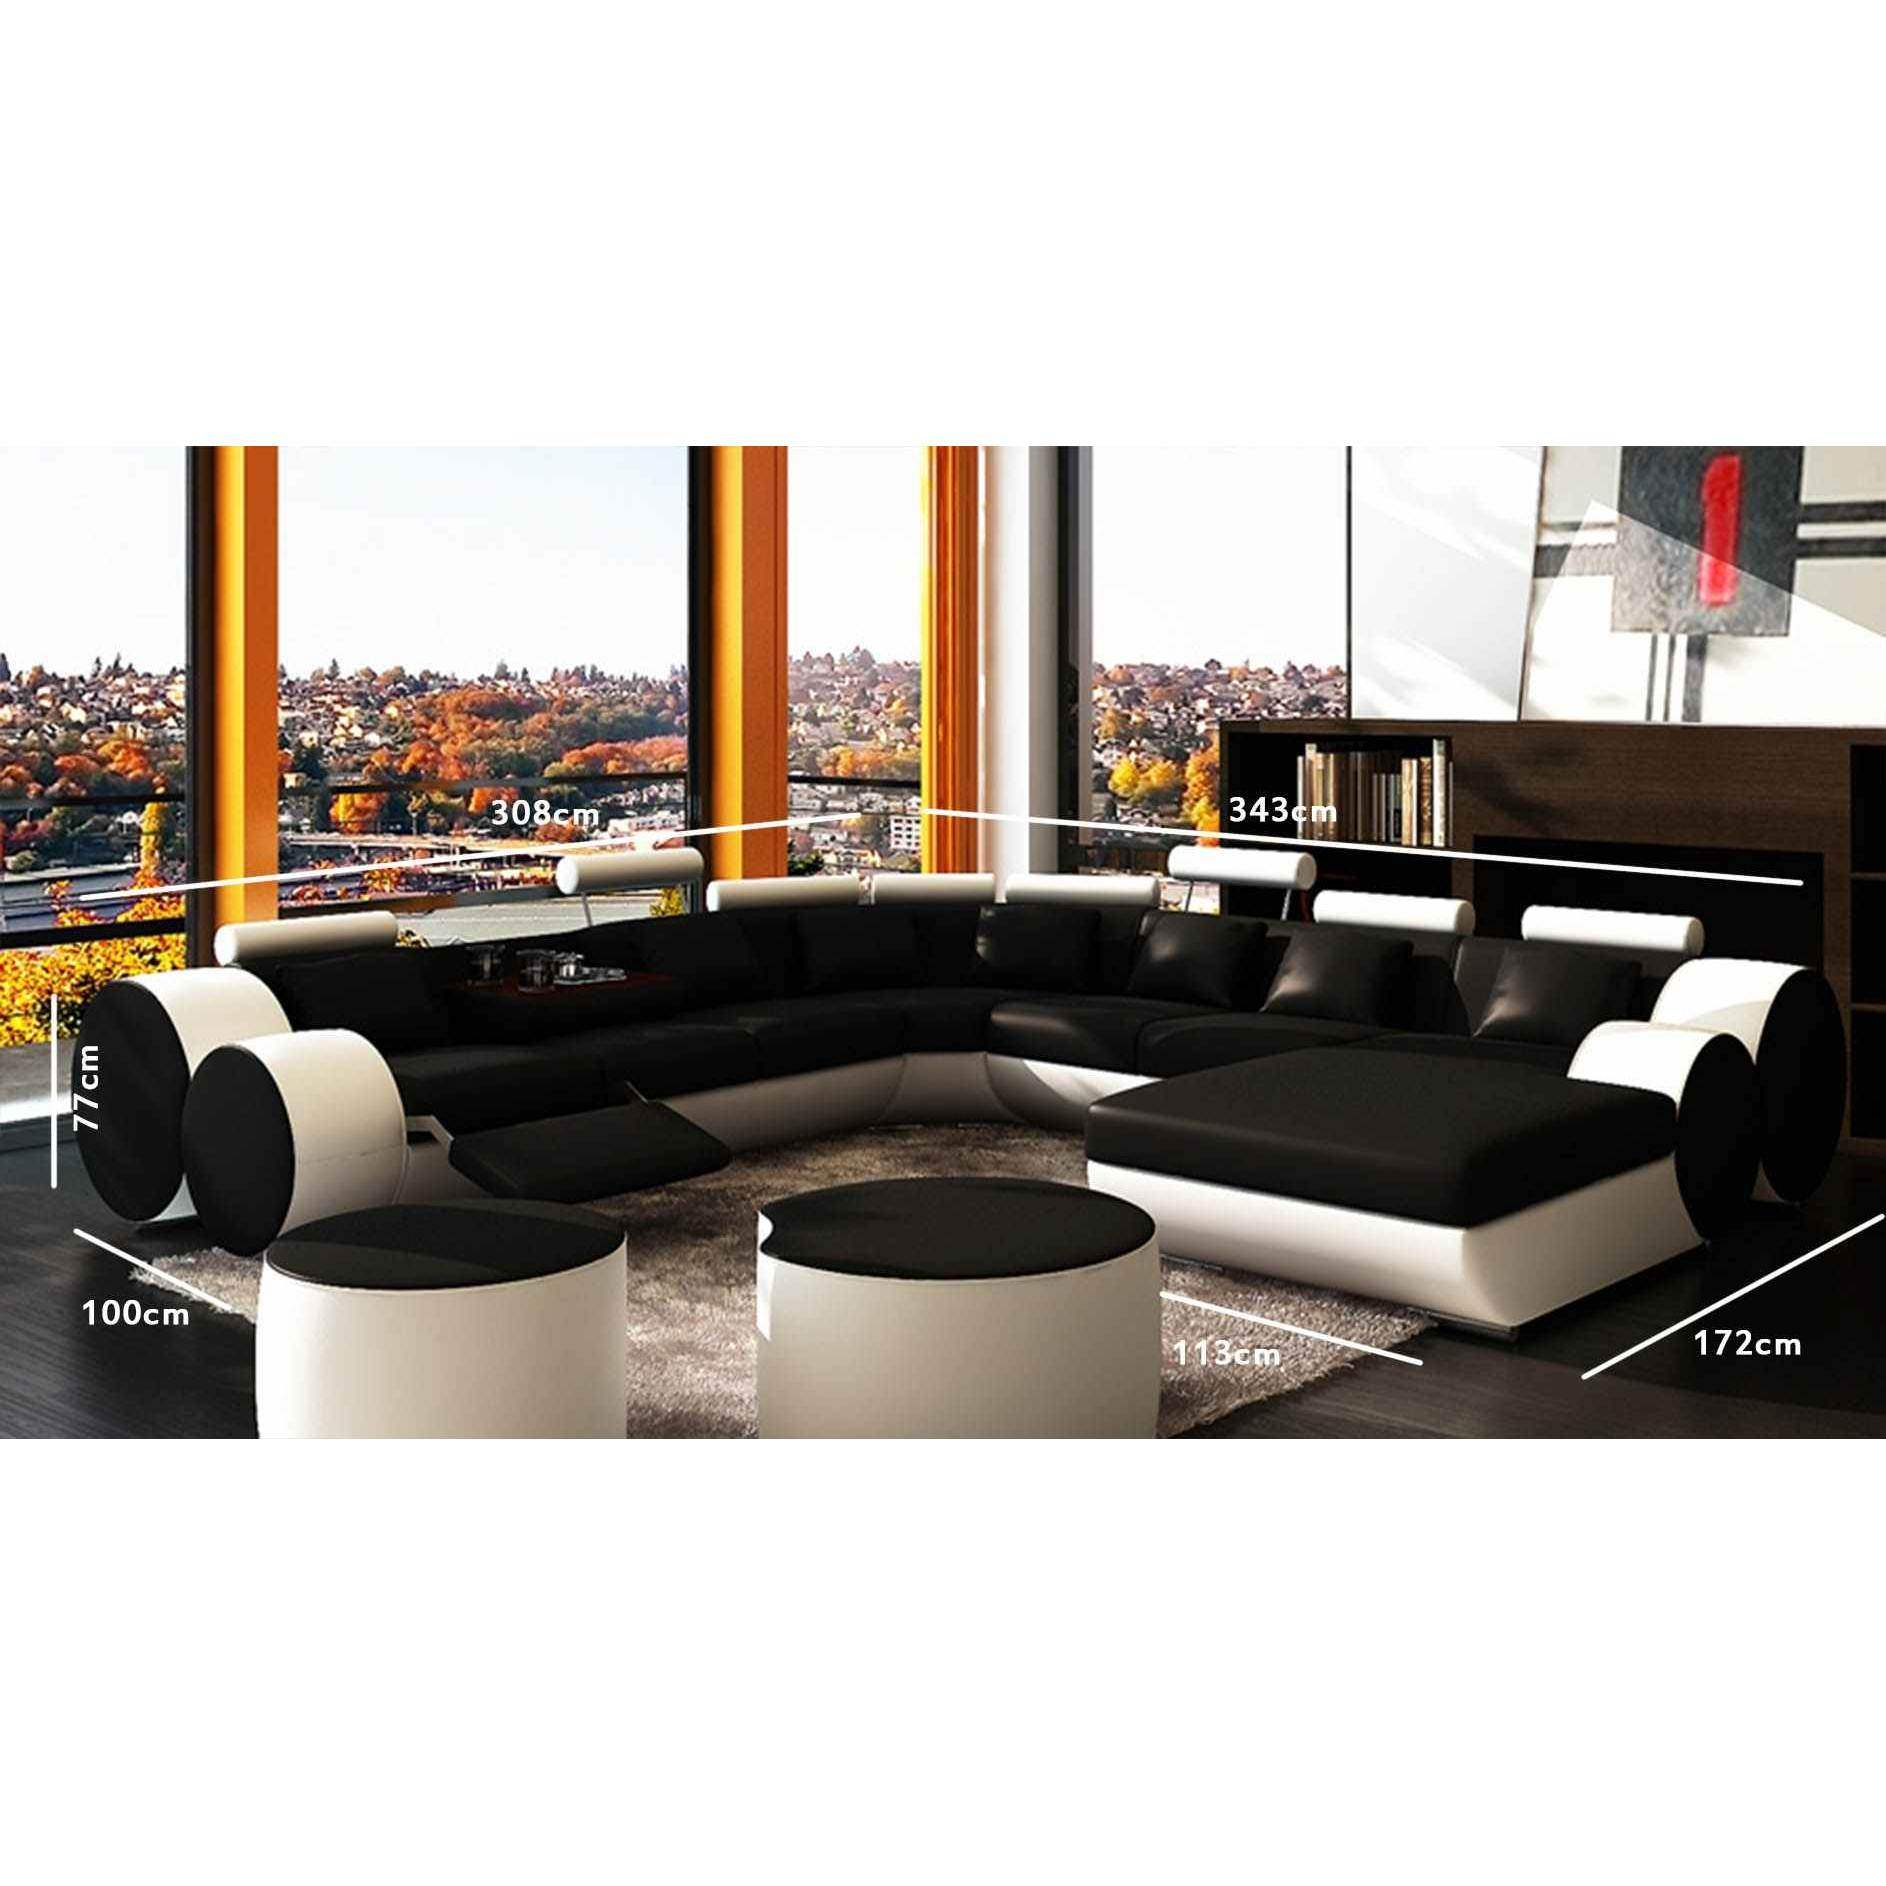 deco in paris canape panoramique cuir noir et blanc roma. Black Bedroom Furniture Sets. Home Design Ideas